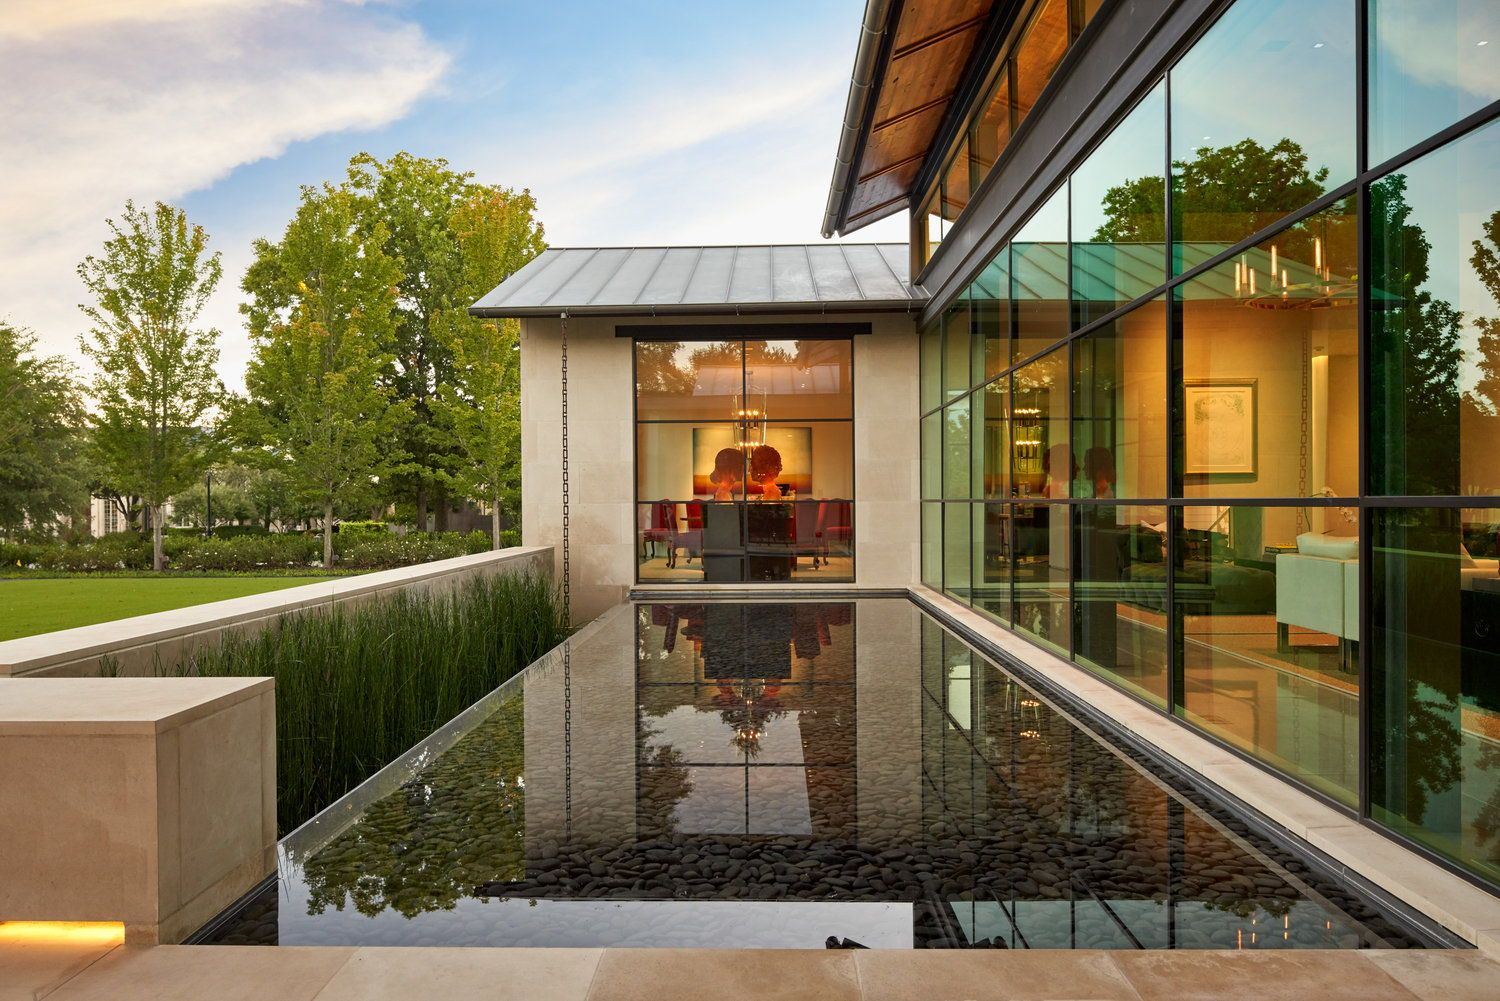 Exterior pond introduces a strong connection between inside and out - SMH Architects #modernhousedesign #dreamhouseideas #housedesigns #exterior #facadedesign